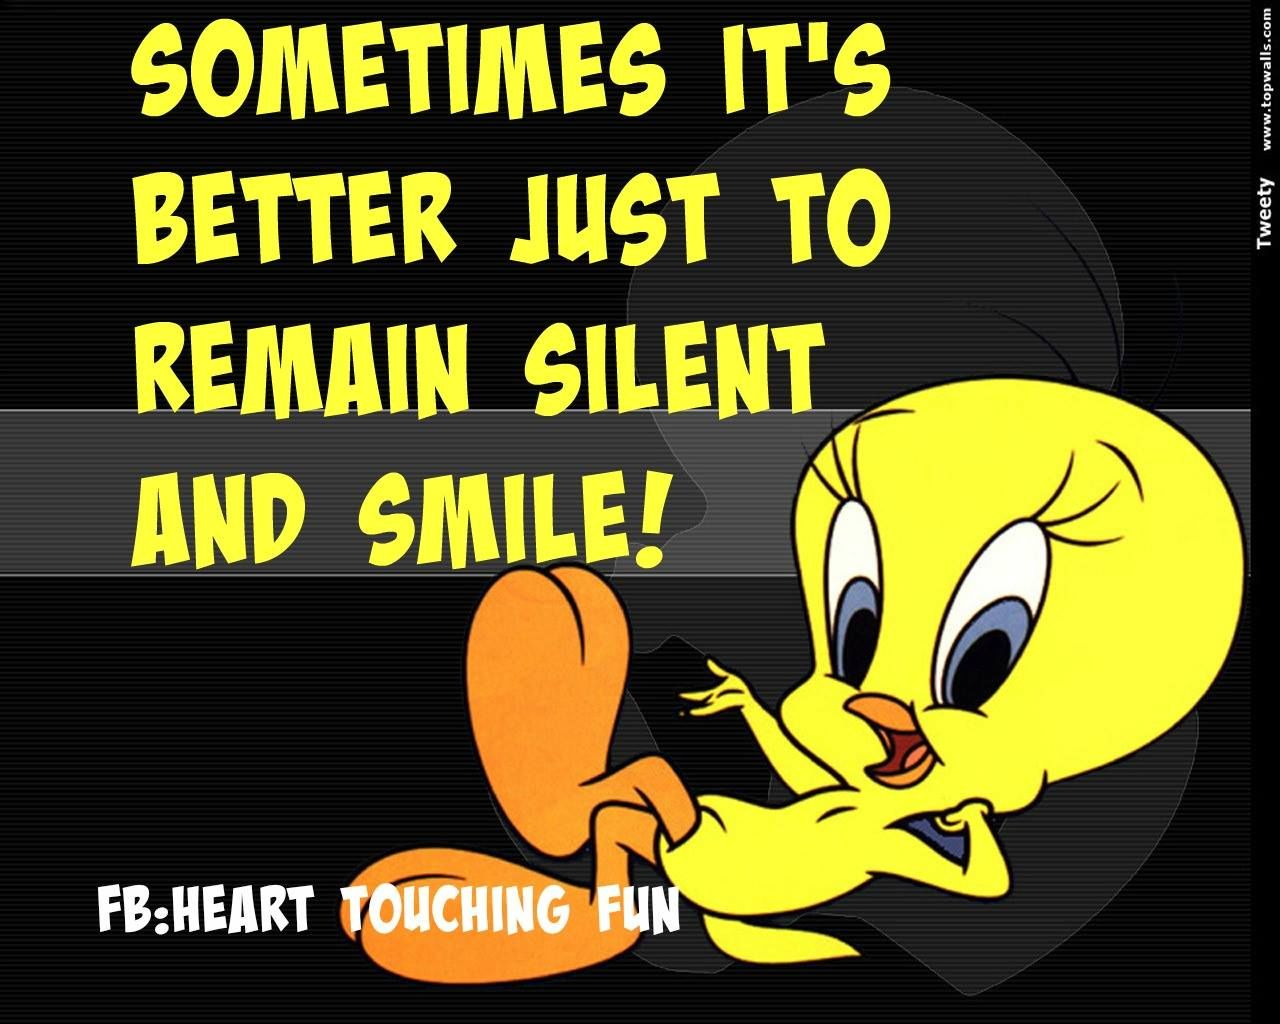 Reanain Silent And Smile